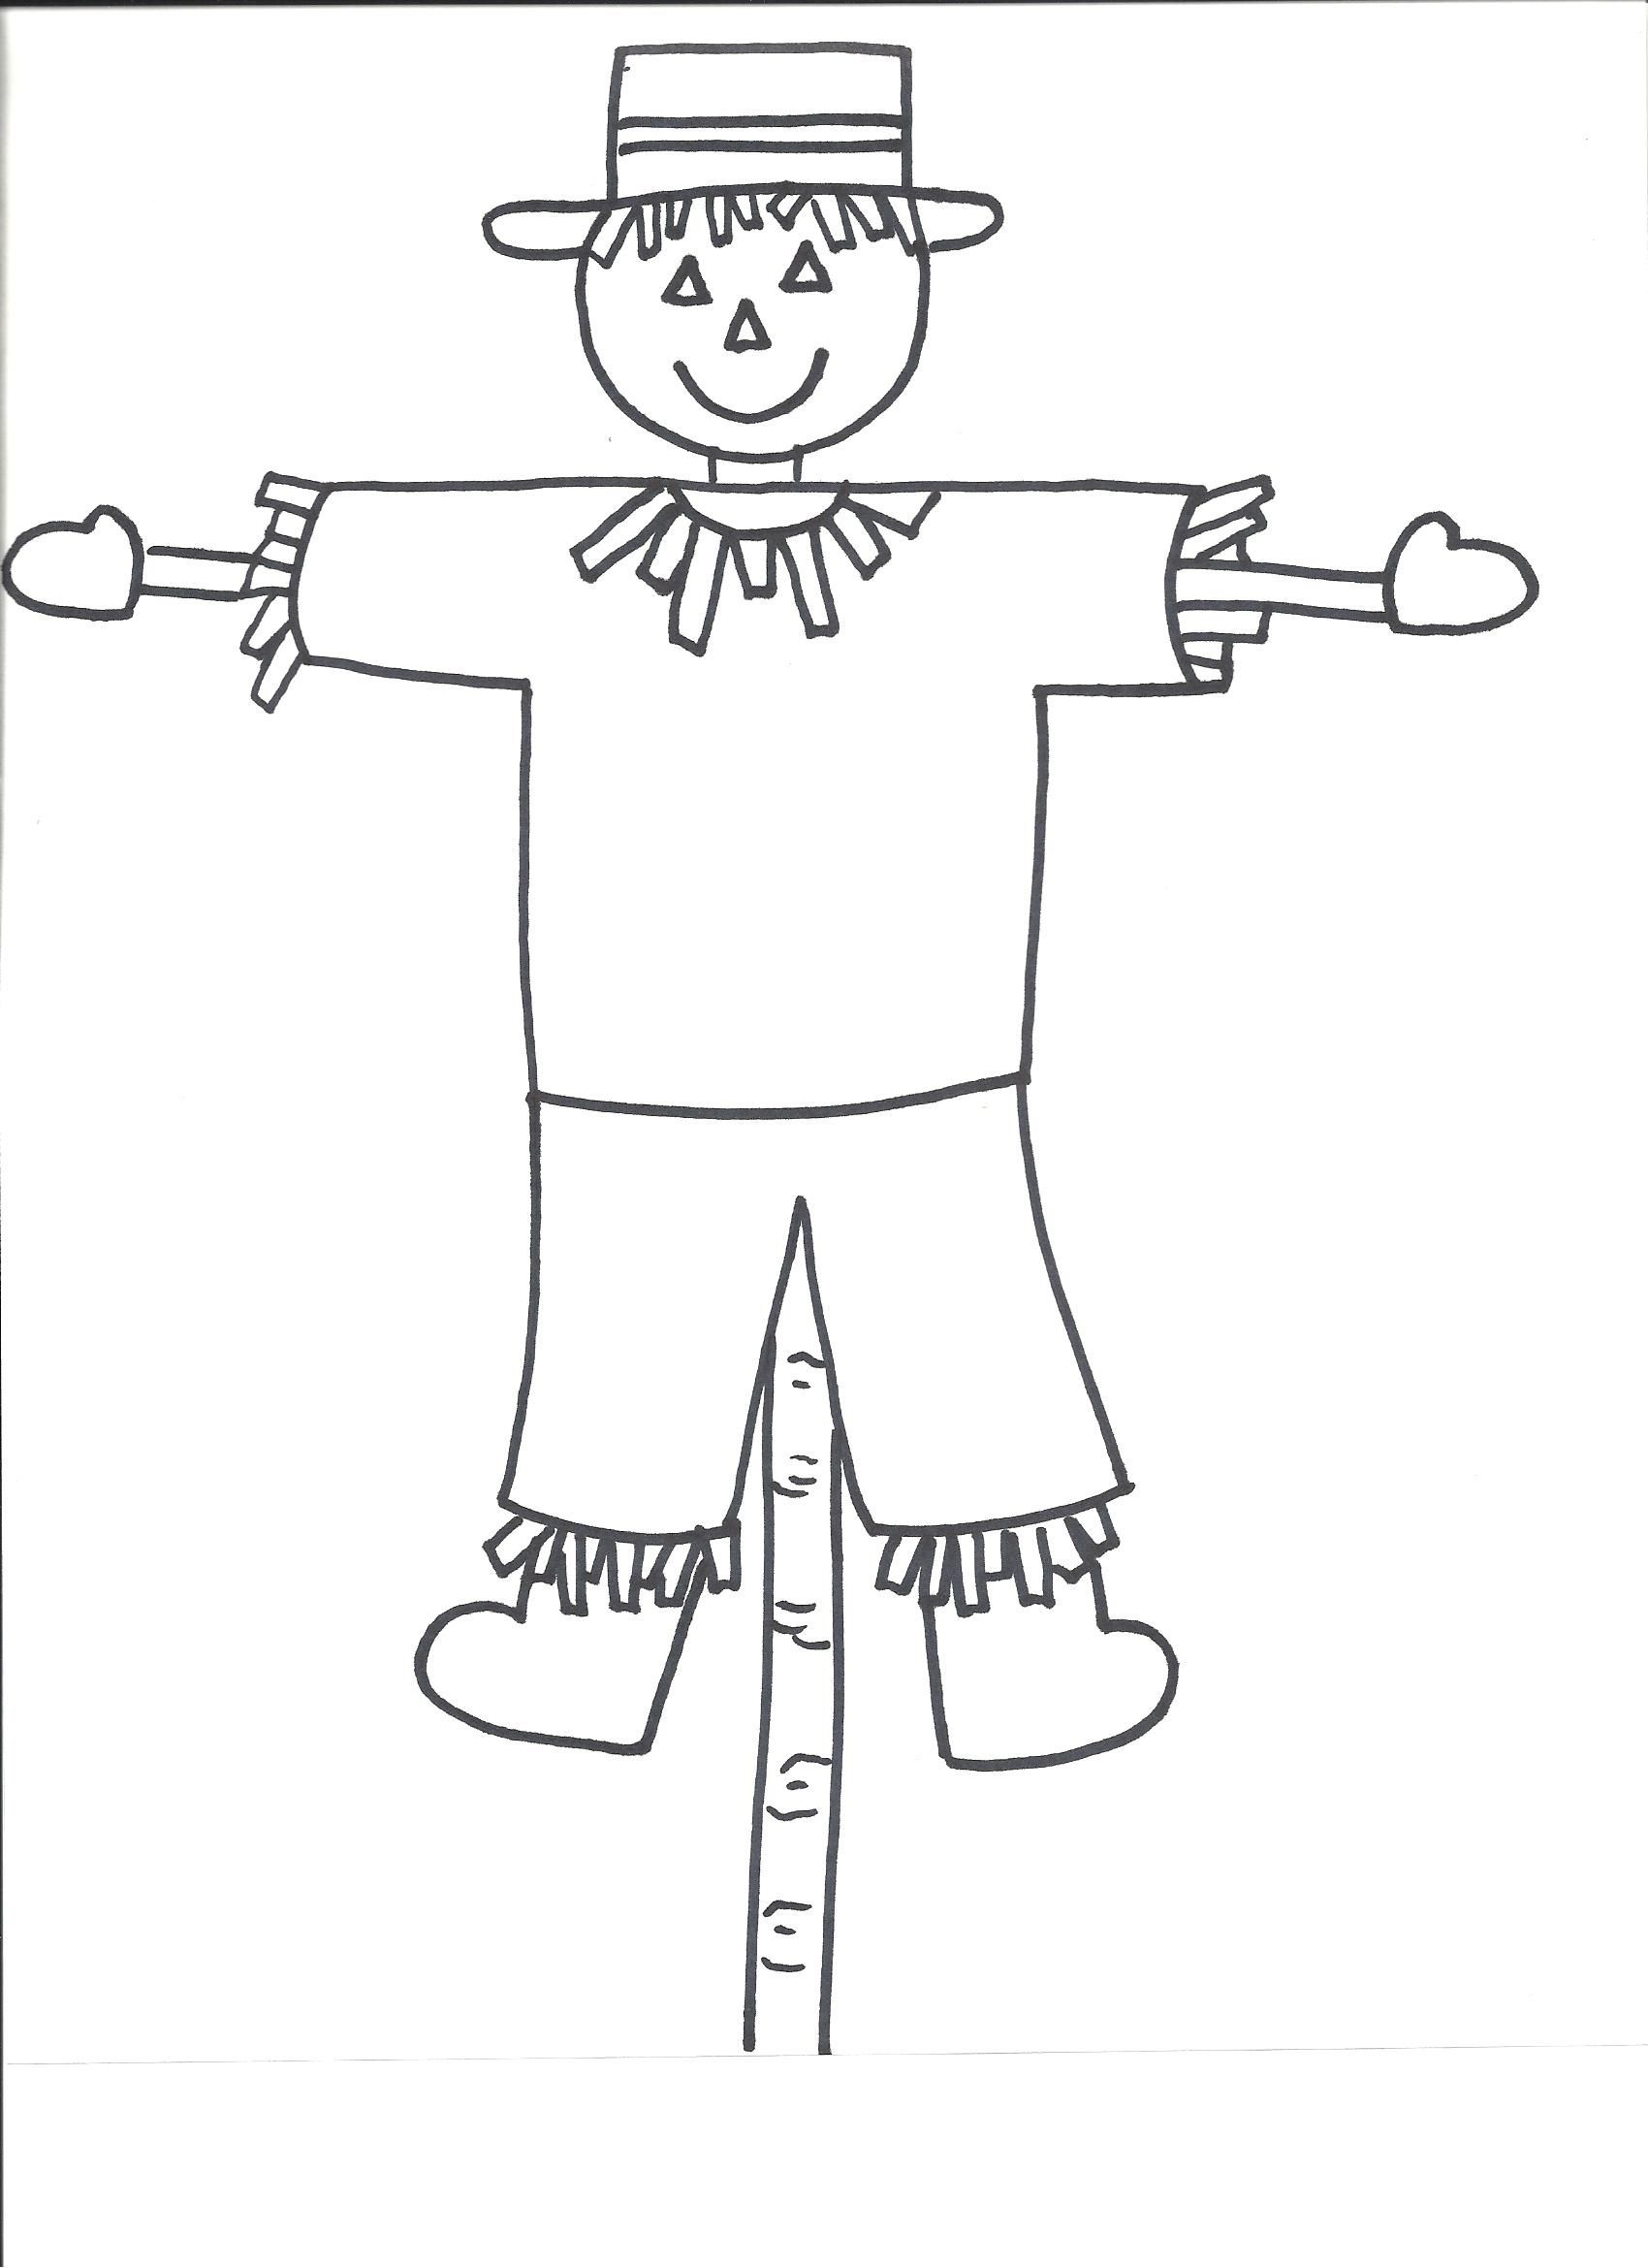 Scarecrow Template | Templates - Crafts For Preschool Kids | Art - Free Scarecrow Template Printable